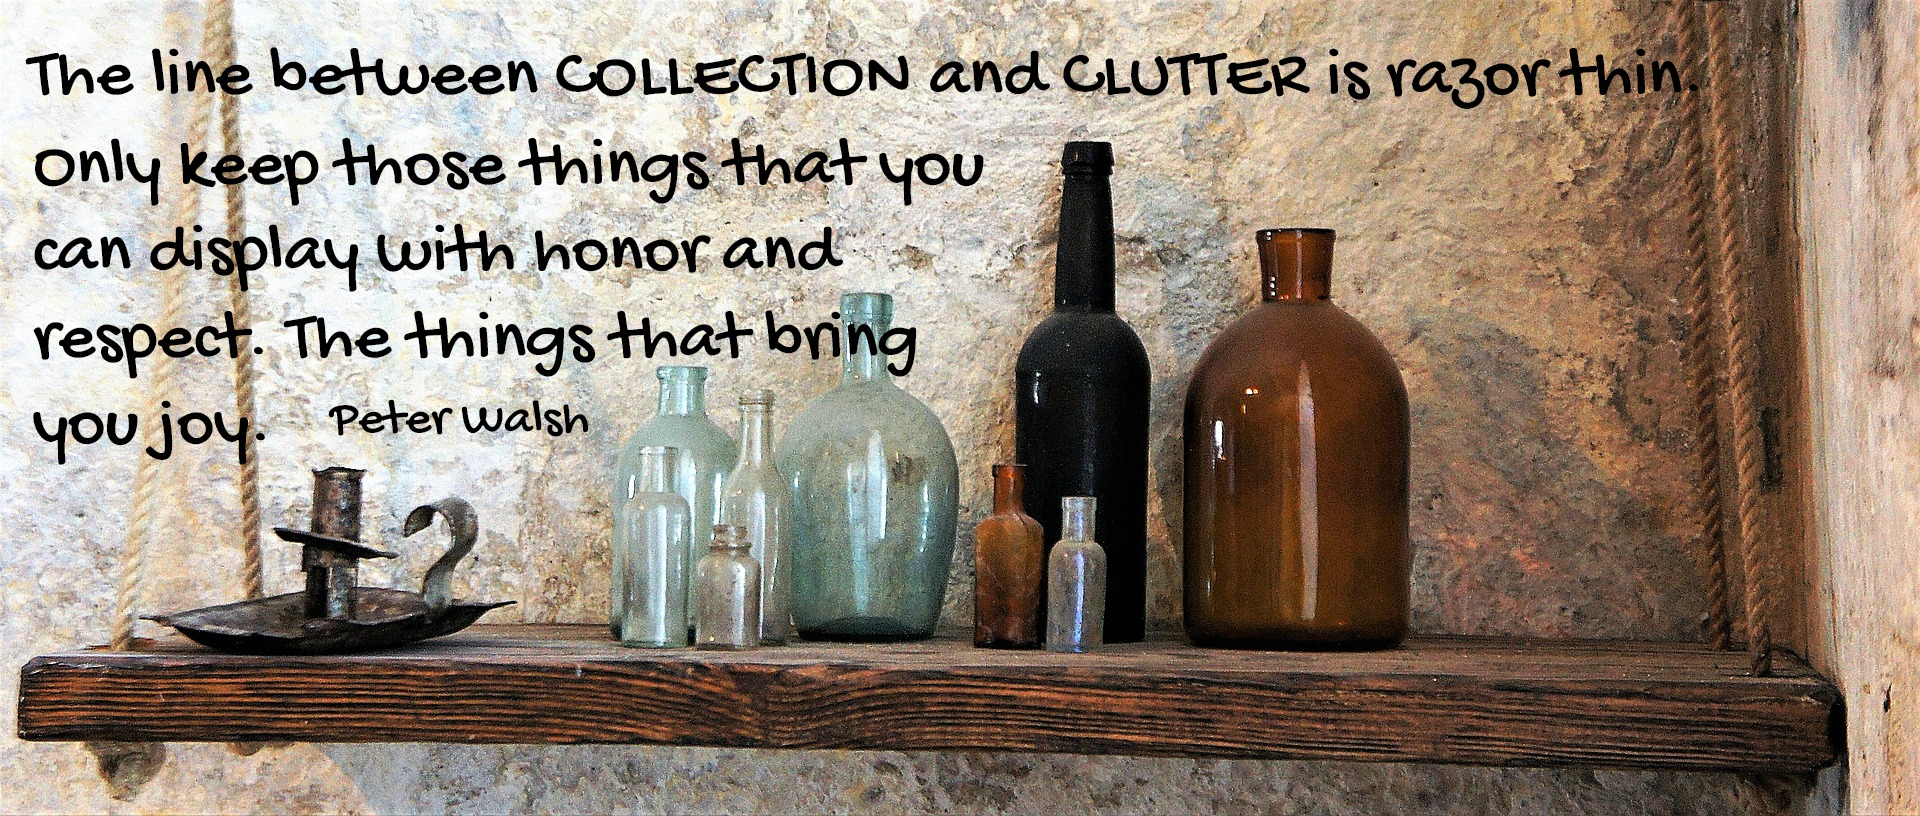 Clutter Doesn't Always Look Cluttered